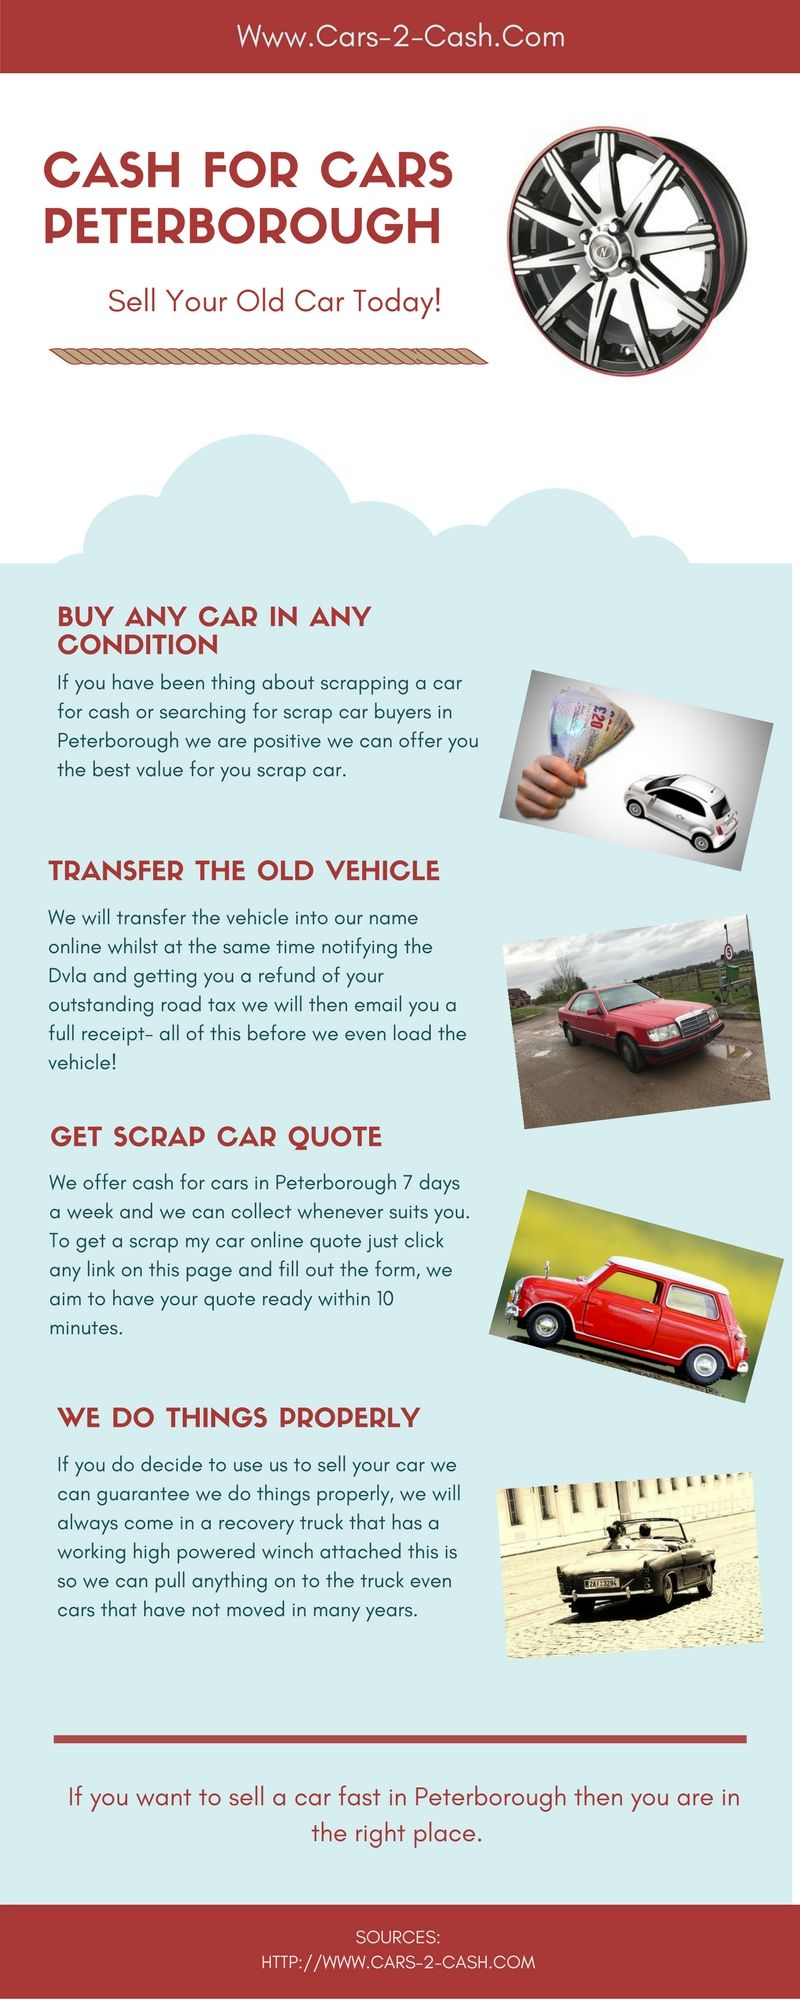 If you have been thing about scrapping a car for cash or